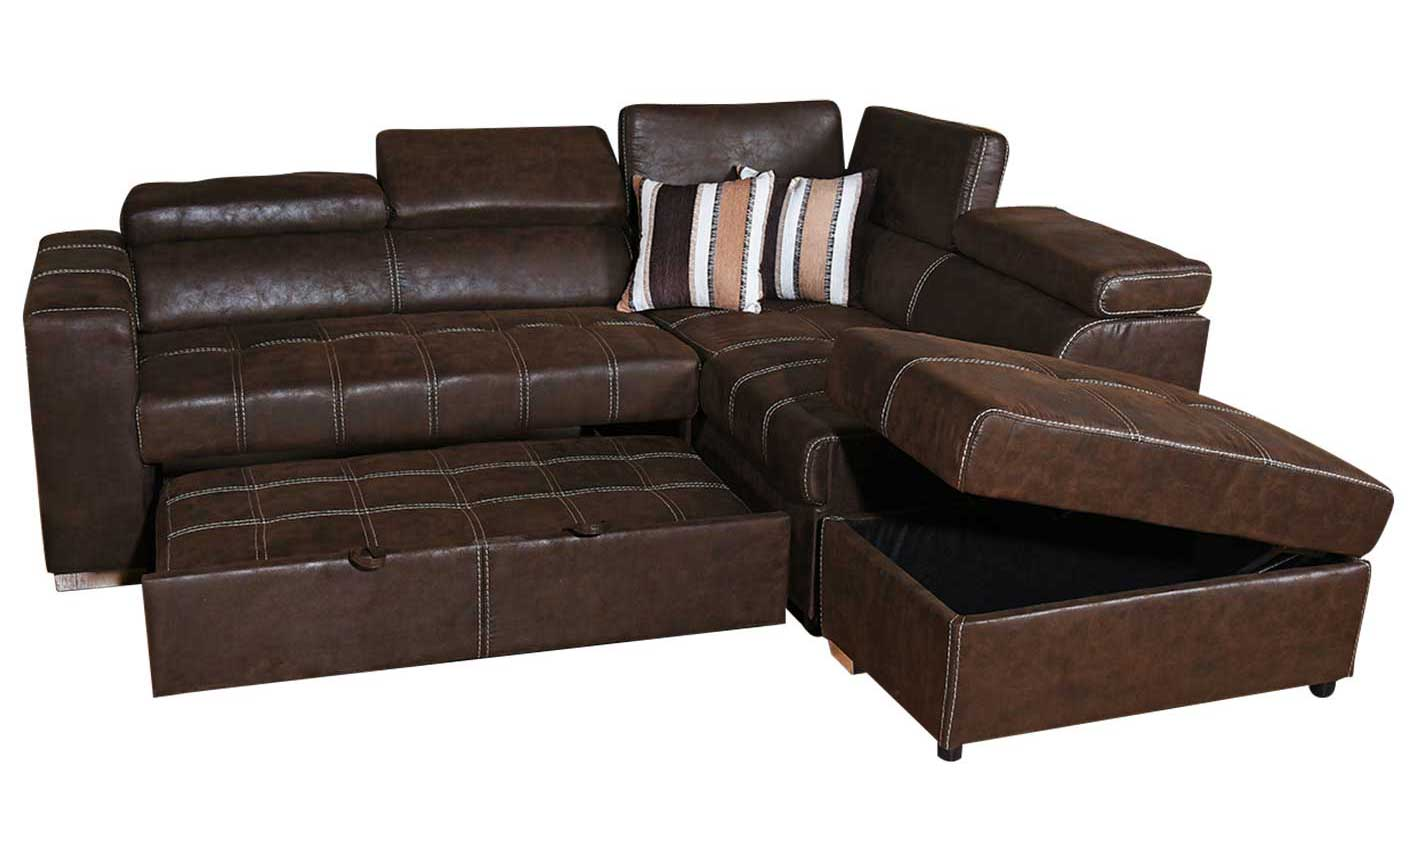 Corner Couches For Sale Hs001 Corner Sleeper Couch Corner Sleeper Couches For